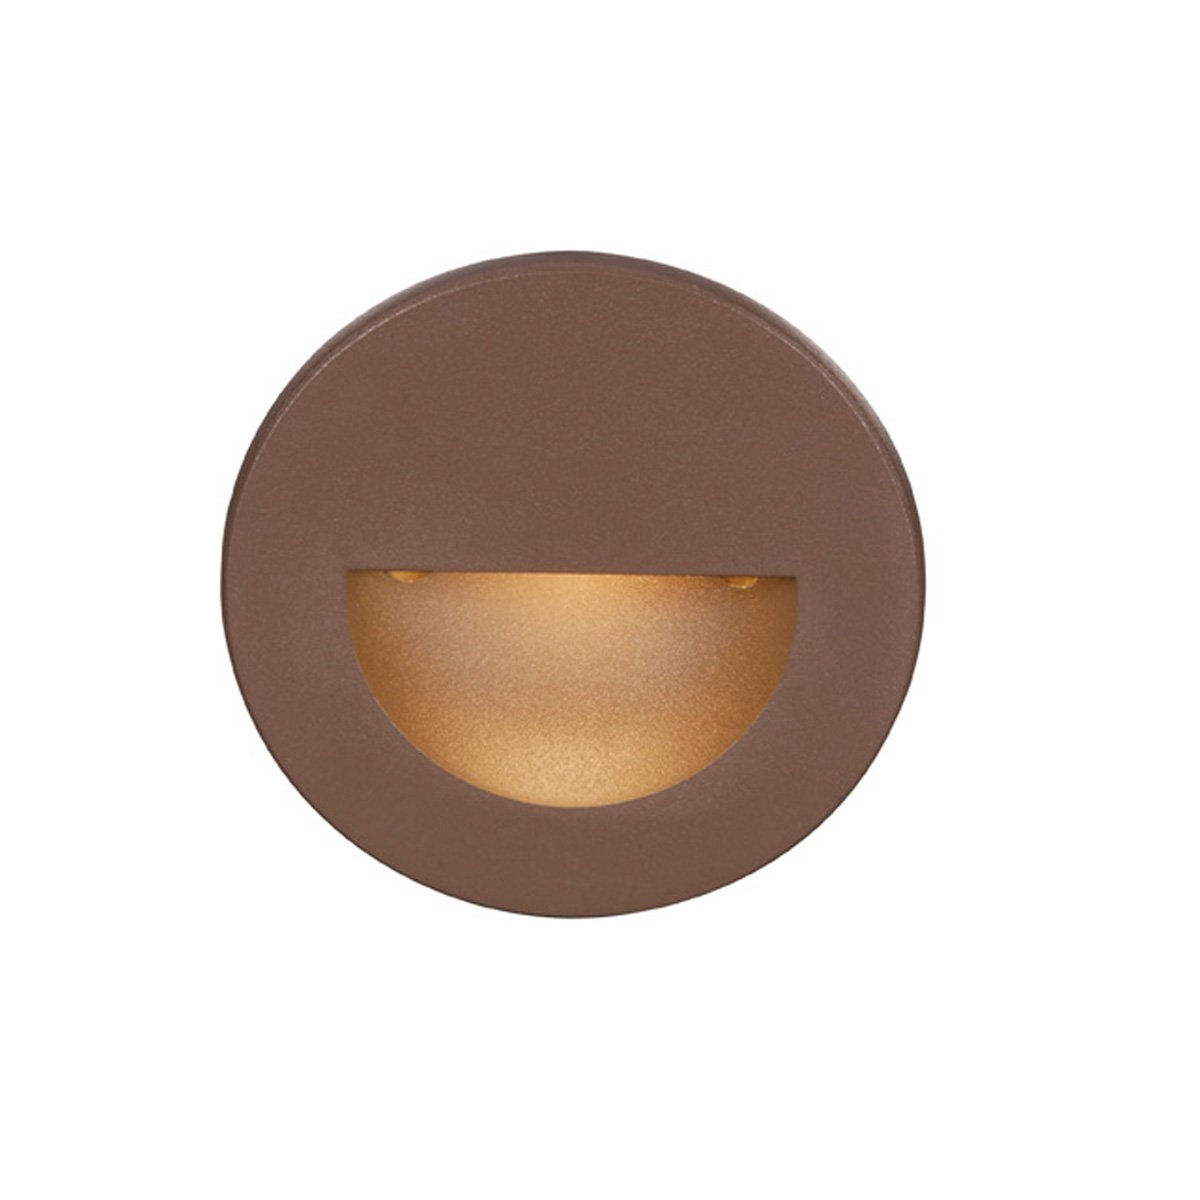 WAC Lighting WL-LED300-C-BZ Circular Scoop 4W 120V LED Step Light with White Lens, Bronze Finish